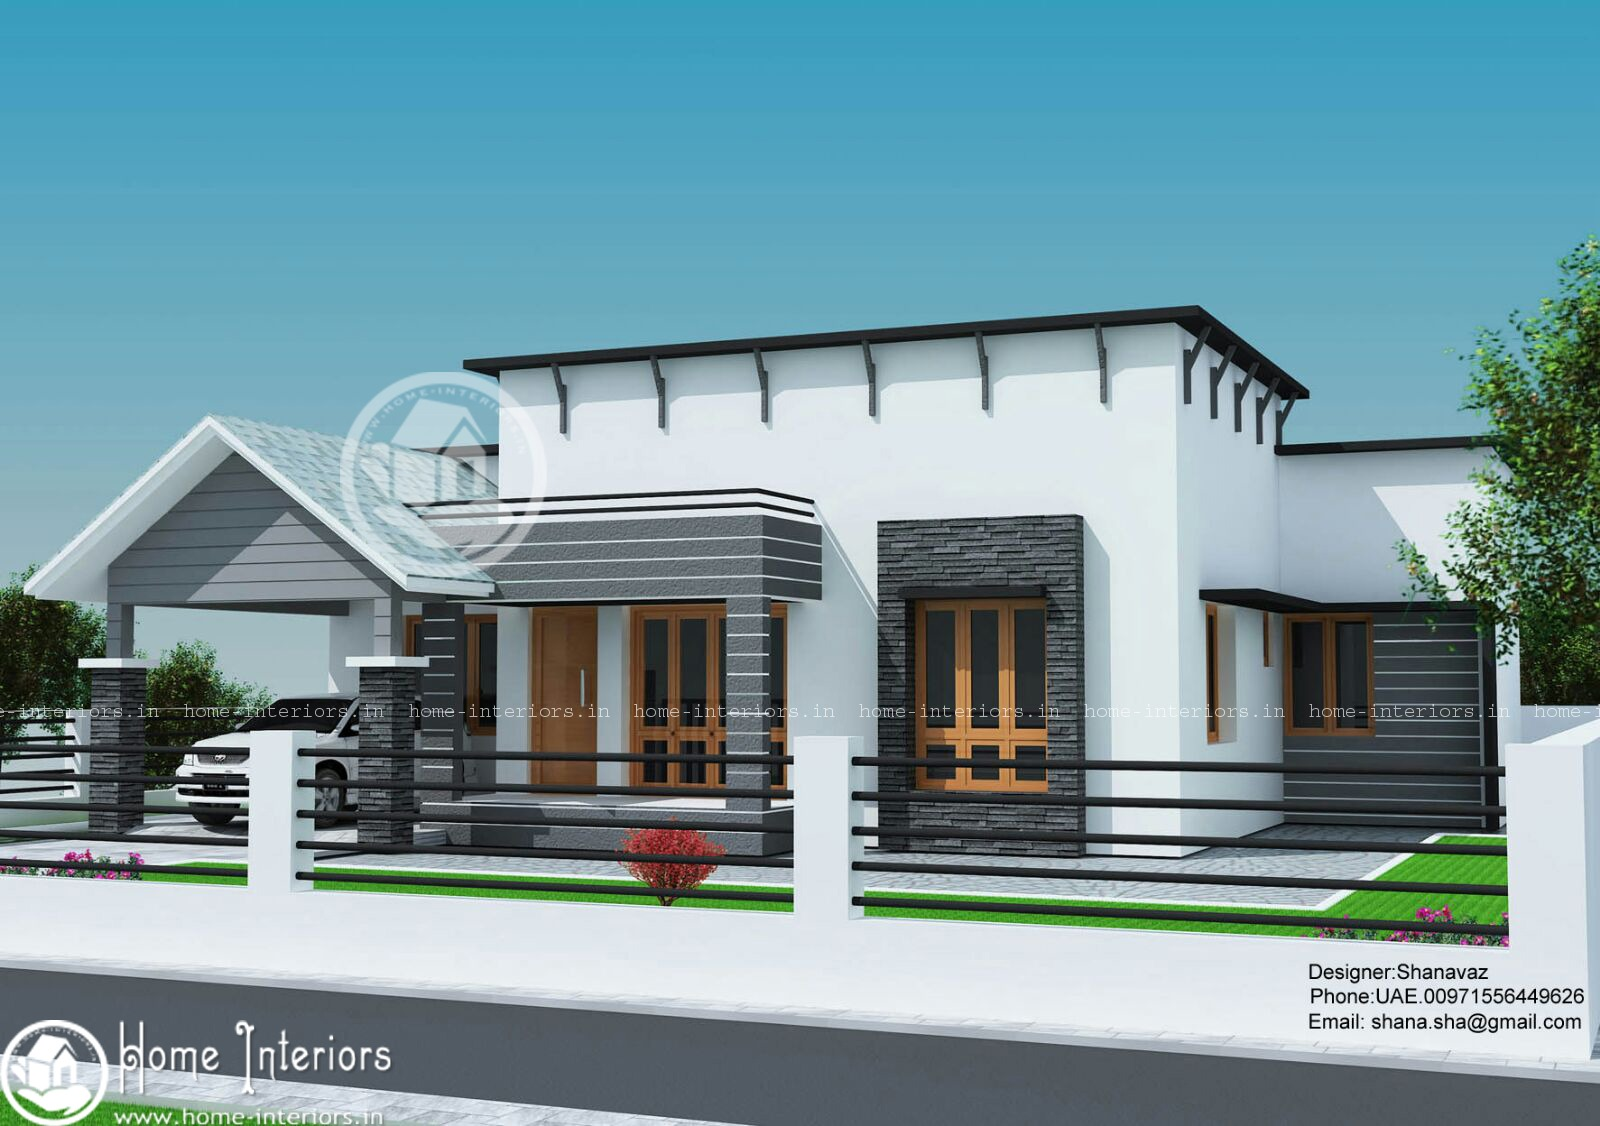 1300 sq ft single floor contemporary home design for Modern single floor house designs